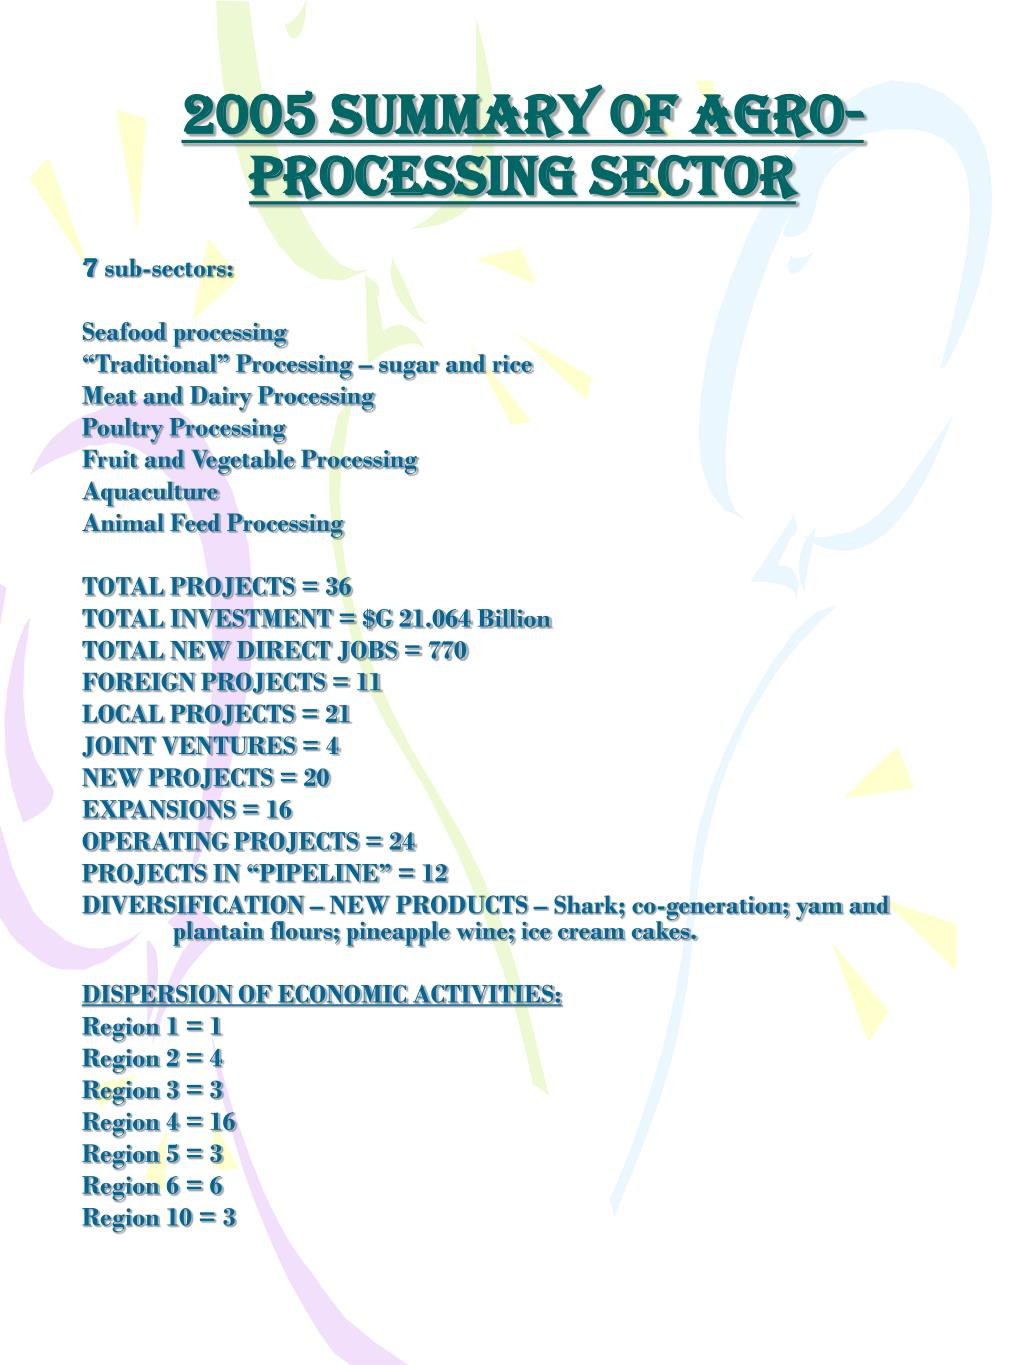 2005 SUMMARY OF AGRO-PROCESSING SECTOR